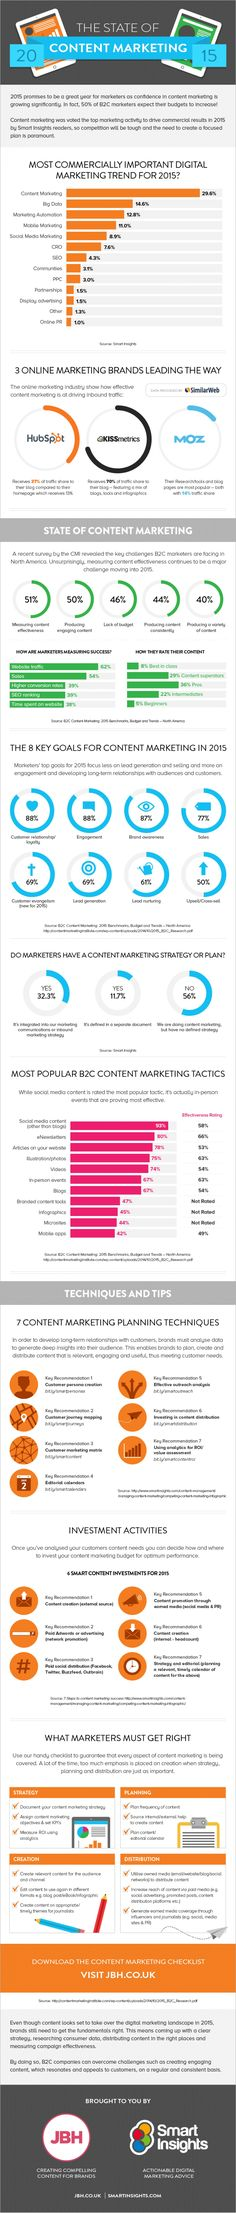 Infographic: 2015's Biggest Content Marketing Trends